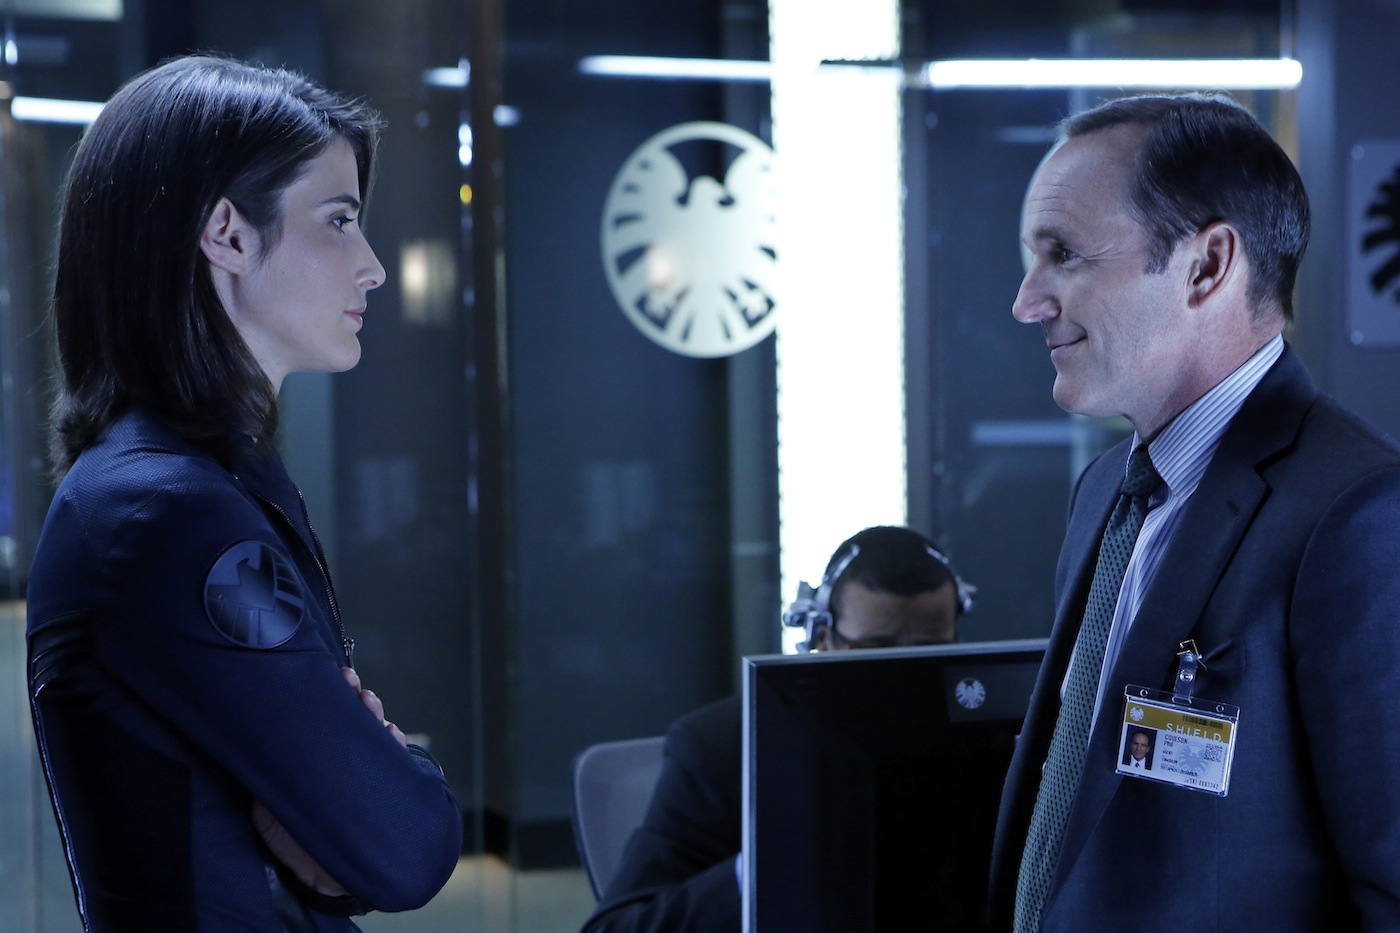 `Marvel's Agents of S.H.I.E.L.D.`: Colbie Smulders (Agent Maria Hill) and Clark Gregg (Agent Phil Coulson) in the pilot episode. (ABC photo by Justin Lubin)